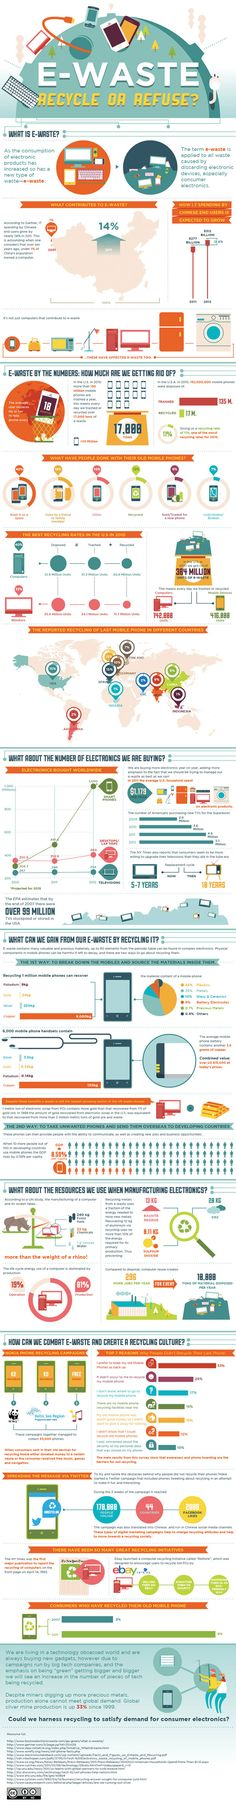 The E-Waste infographic